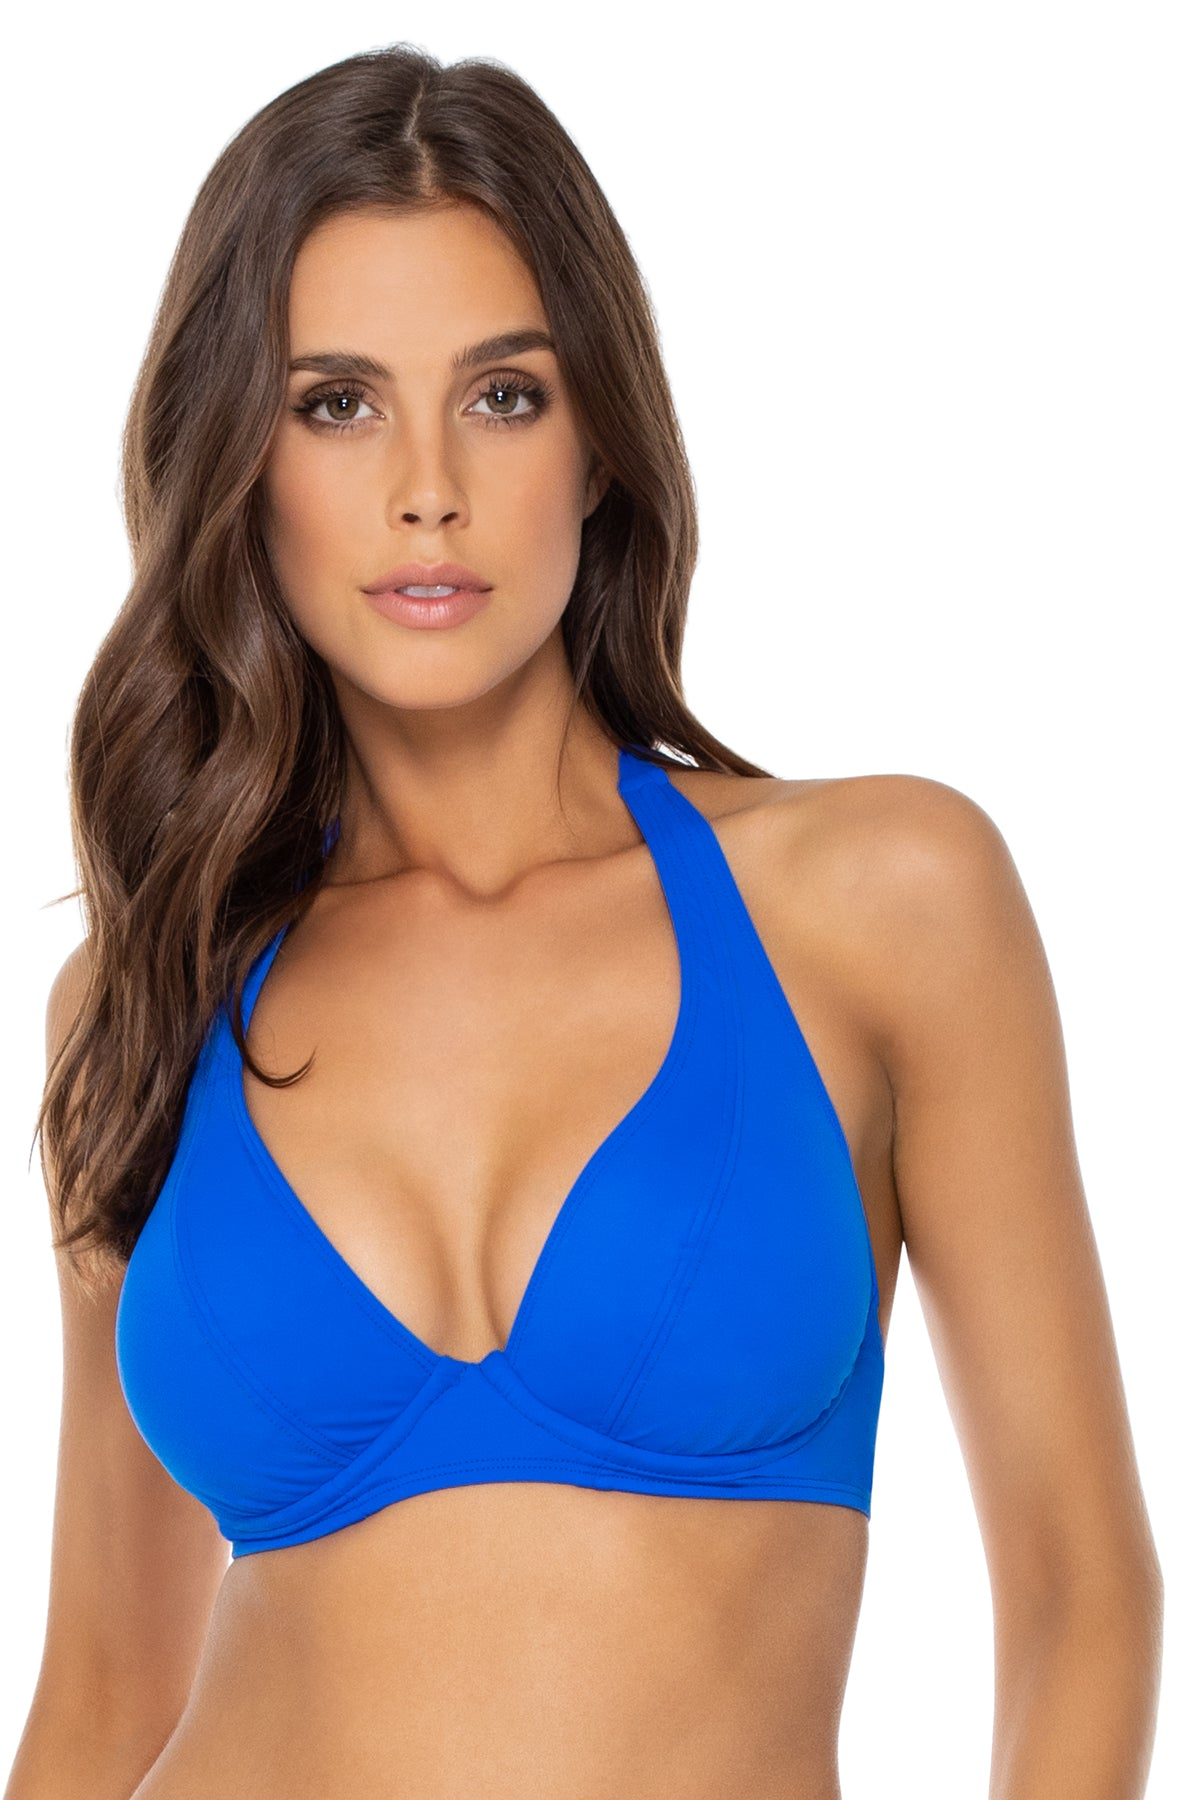 Sunsets Muse Bikini Top Imperial Blue 51EFGH